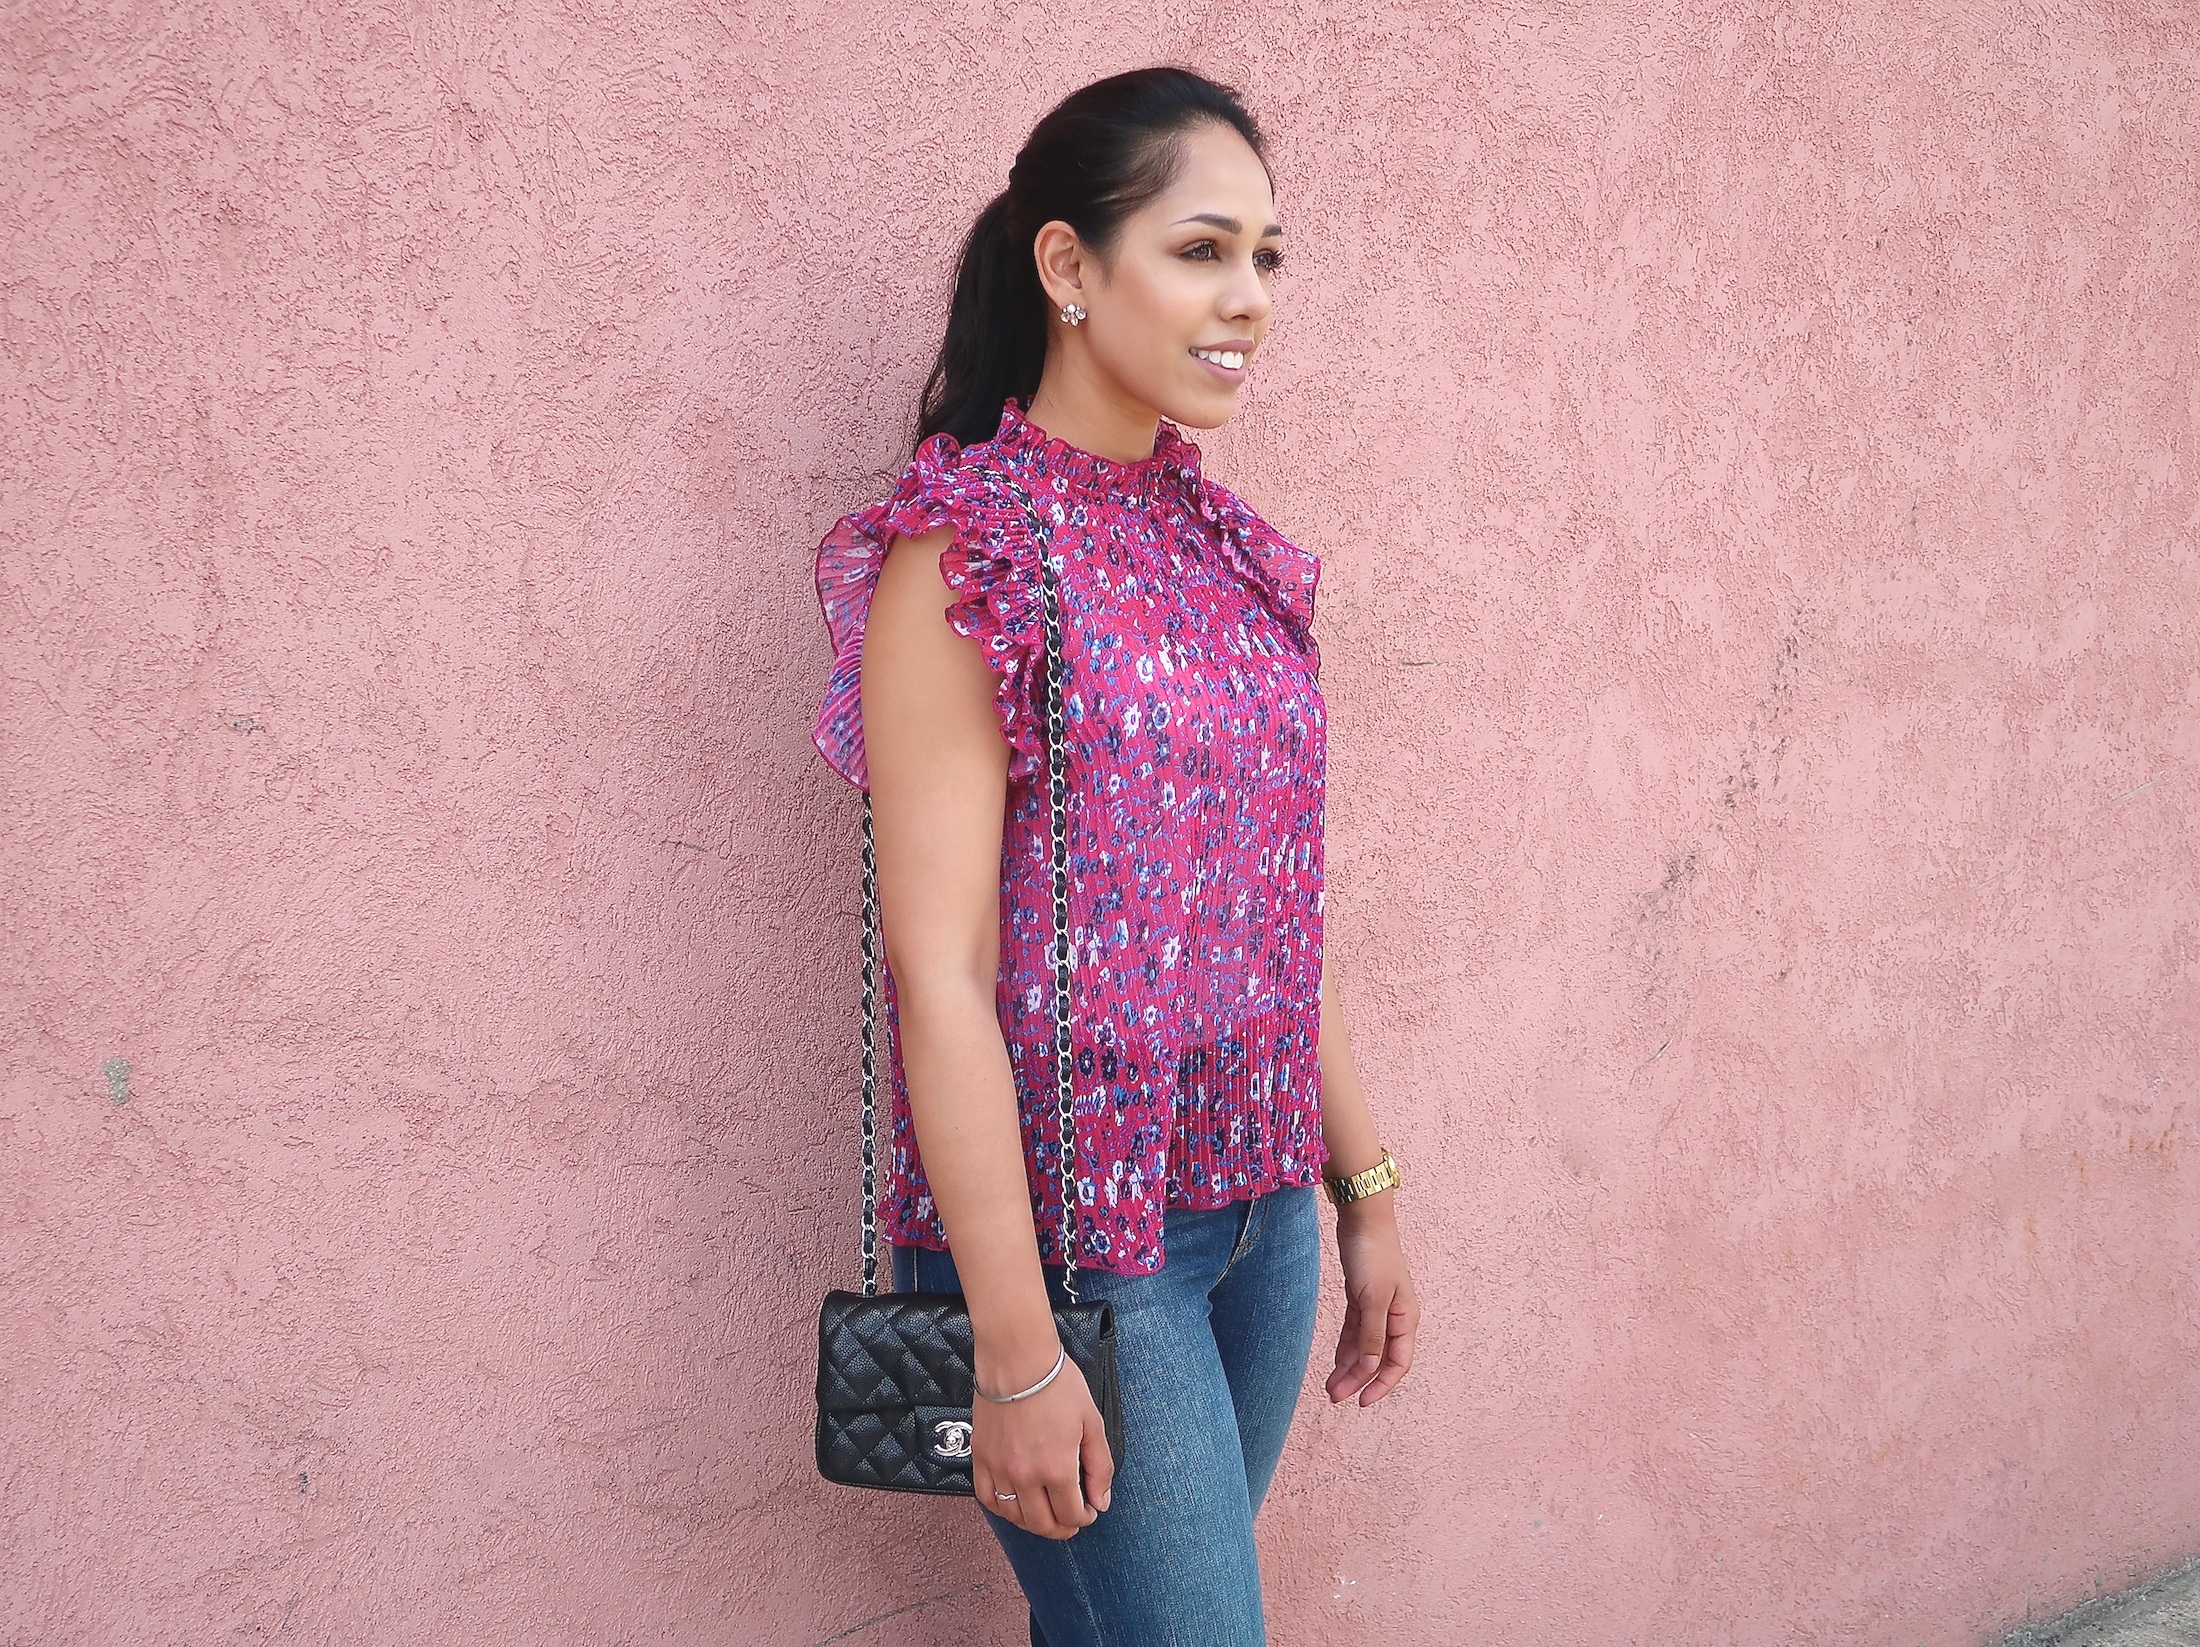 floral-blouse-fashion-summer-outfit-ideas.jpg